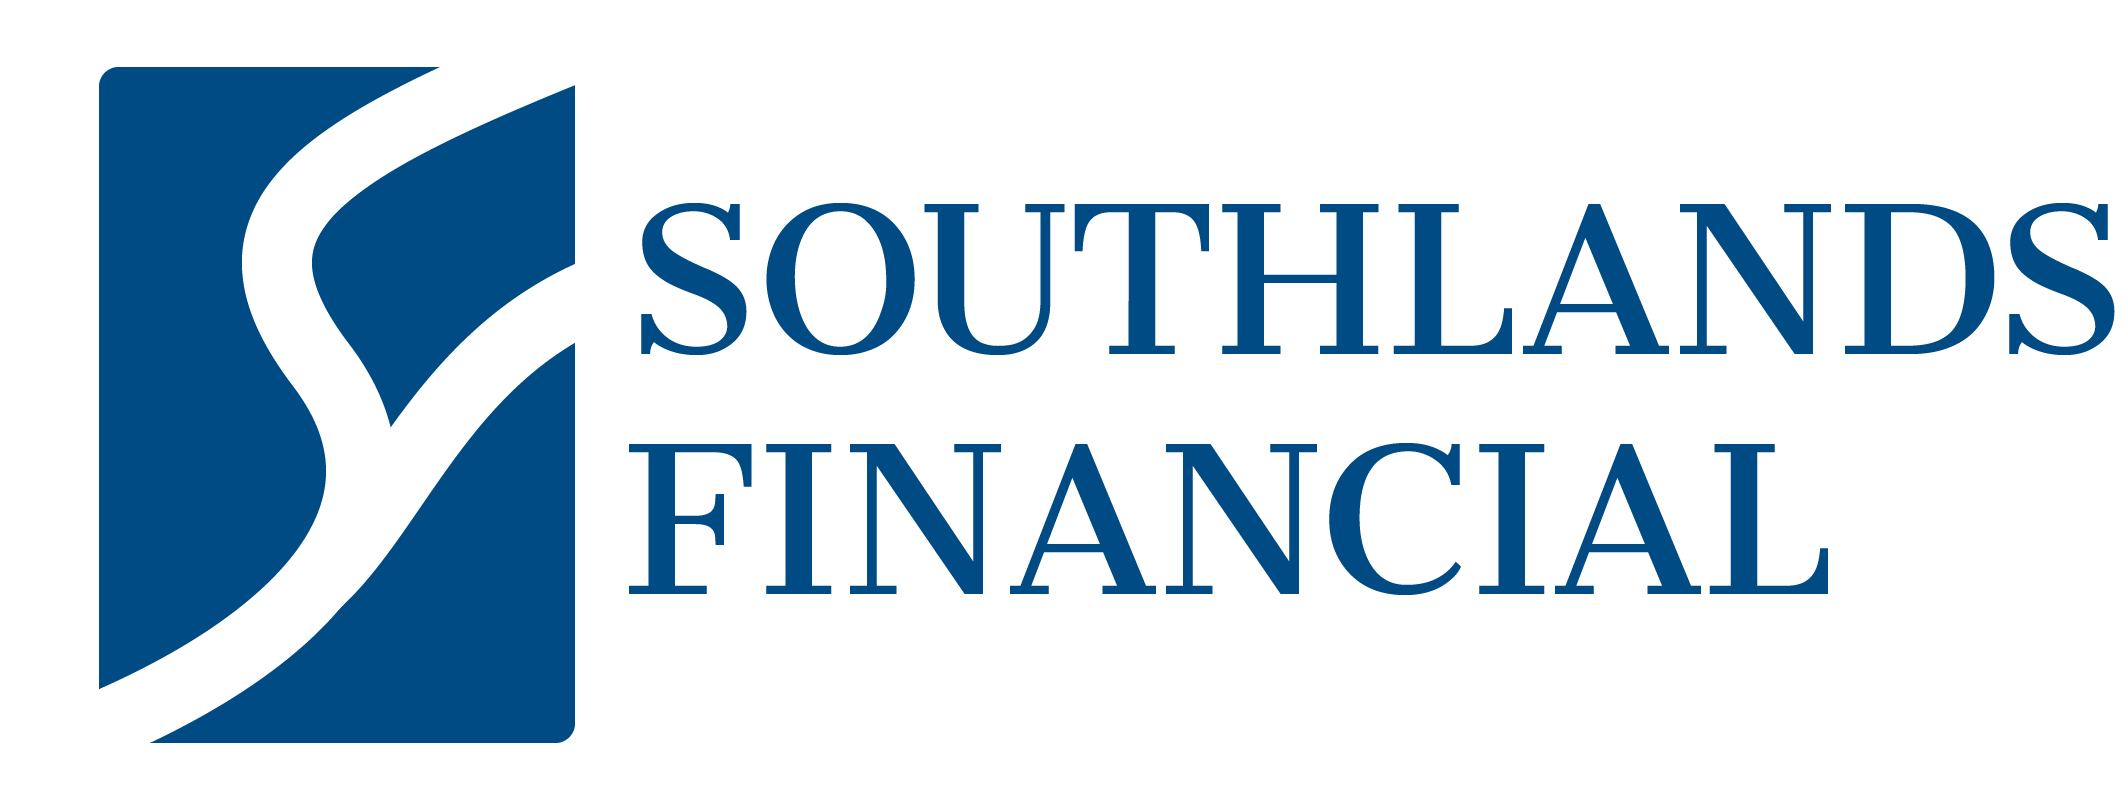 Southlands Financial Logo Text Colour.png